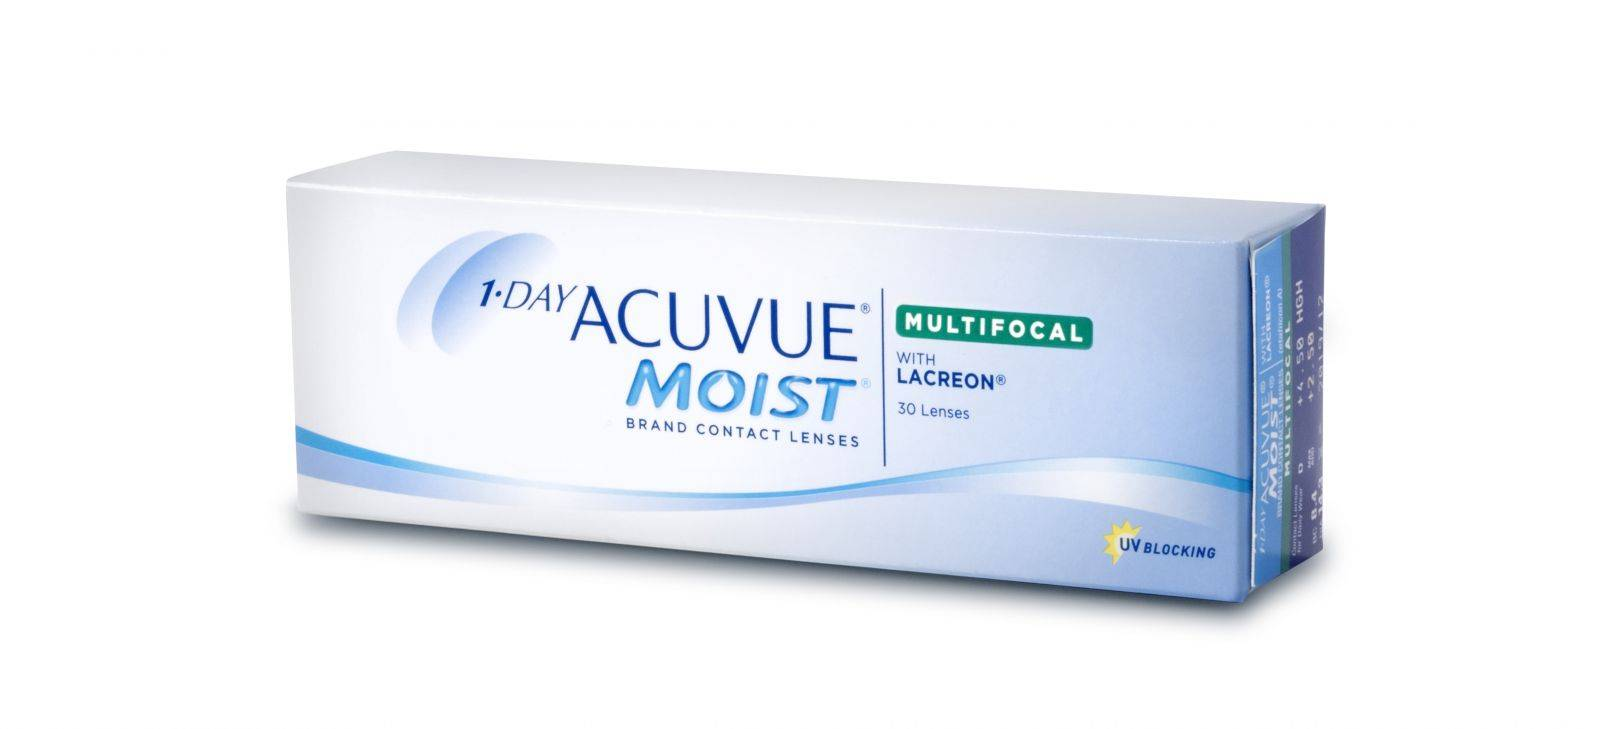 1day acuvue moist multifocal pic